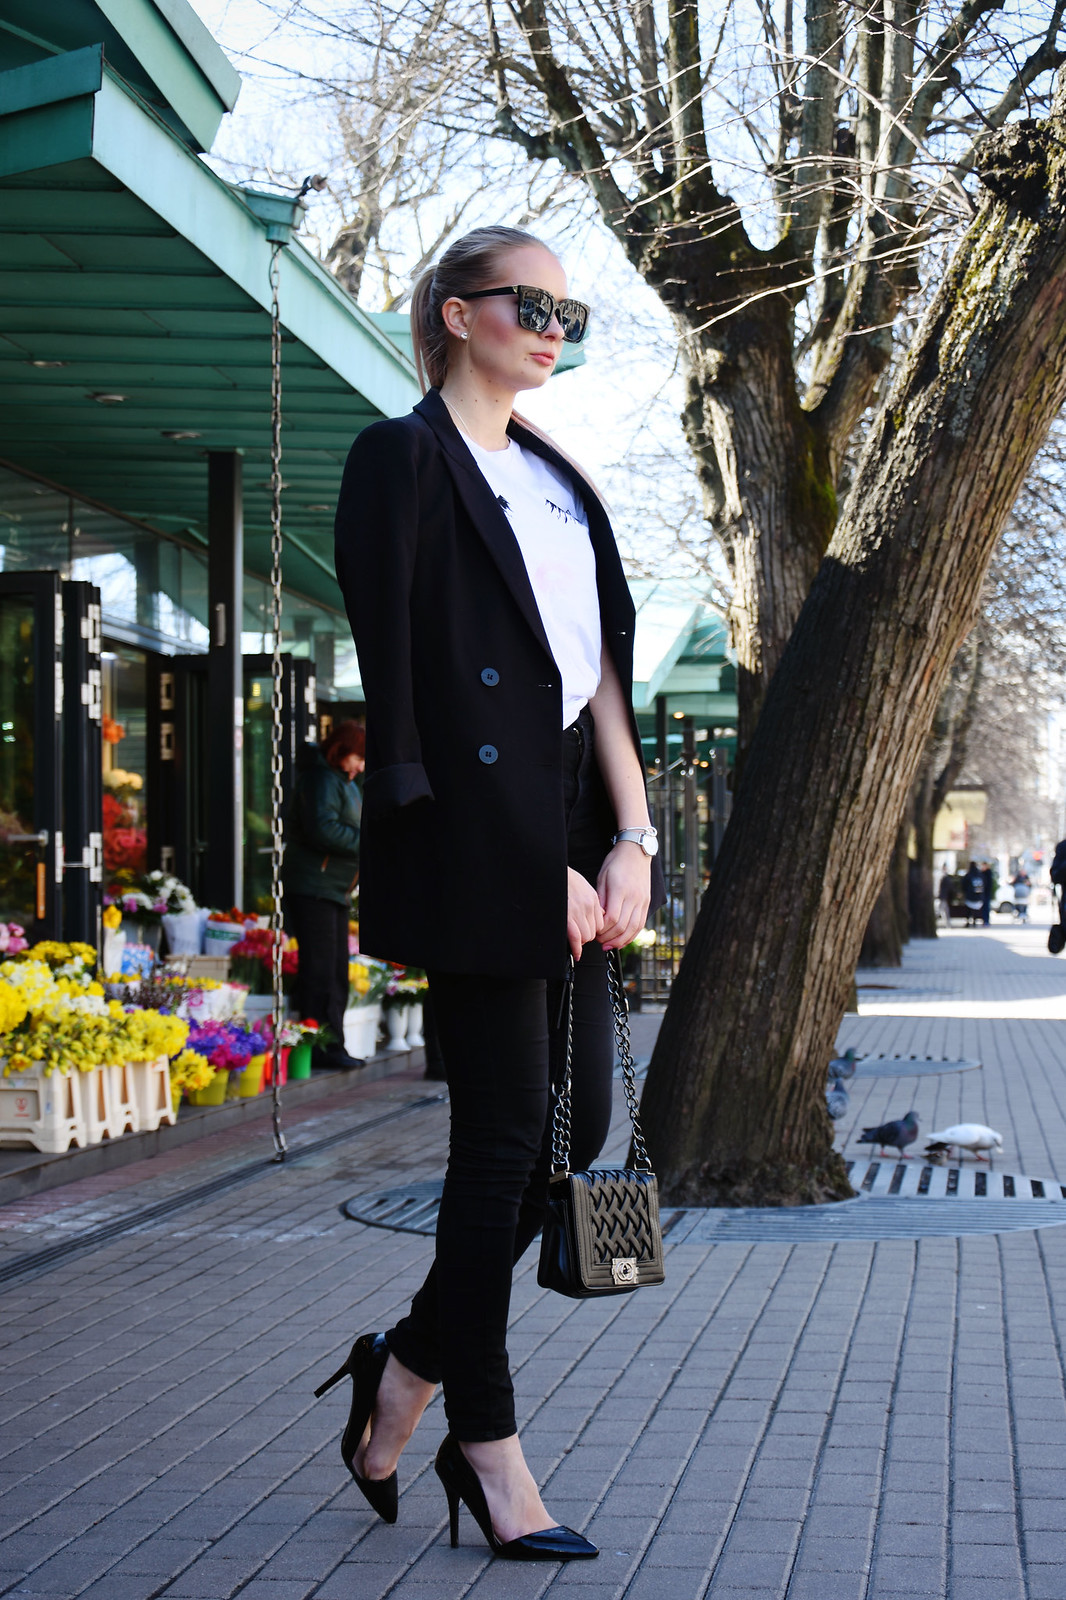 Smart spring outfit